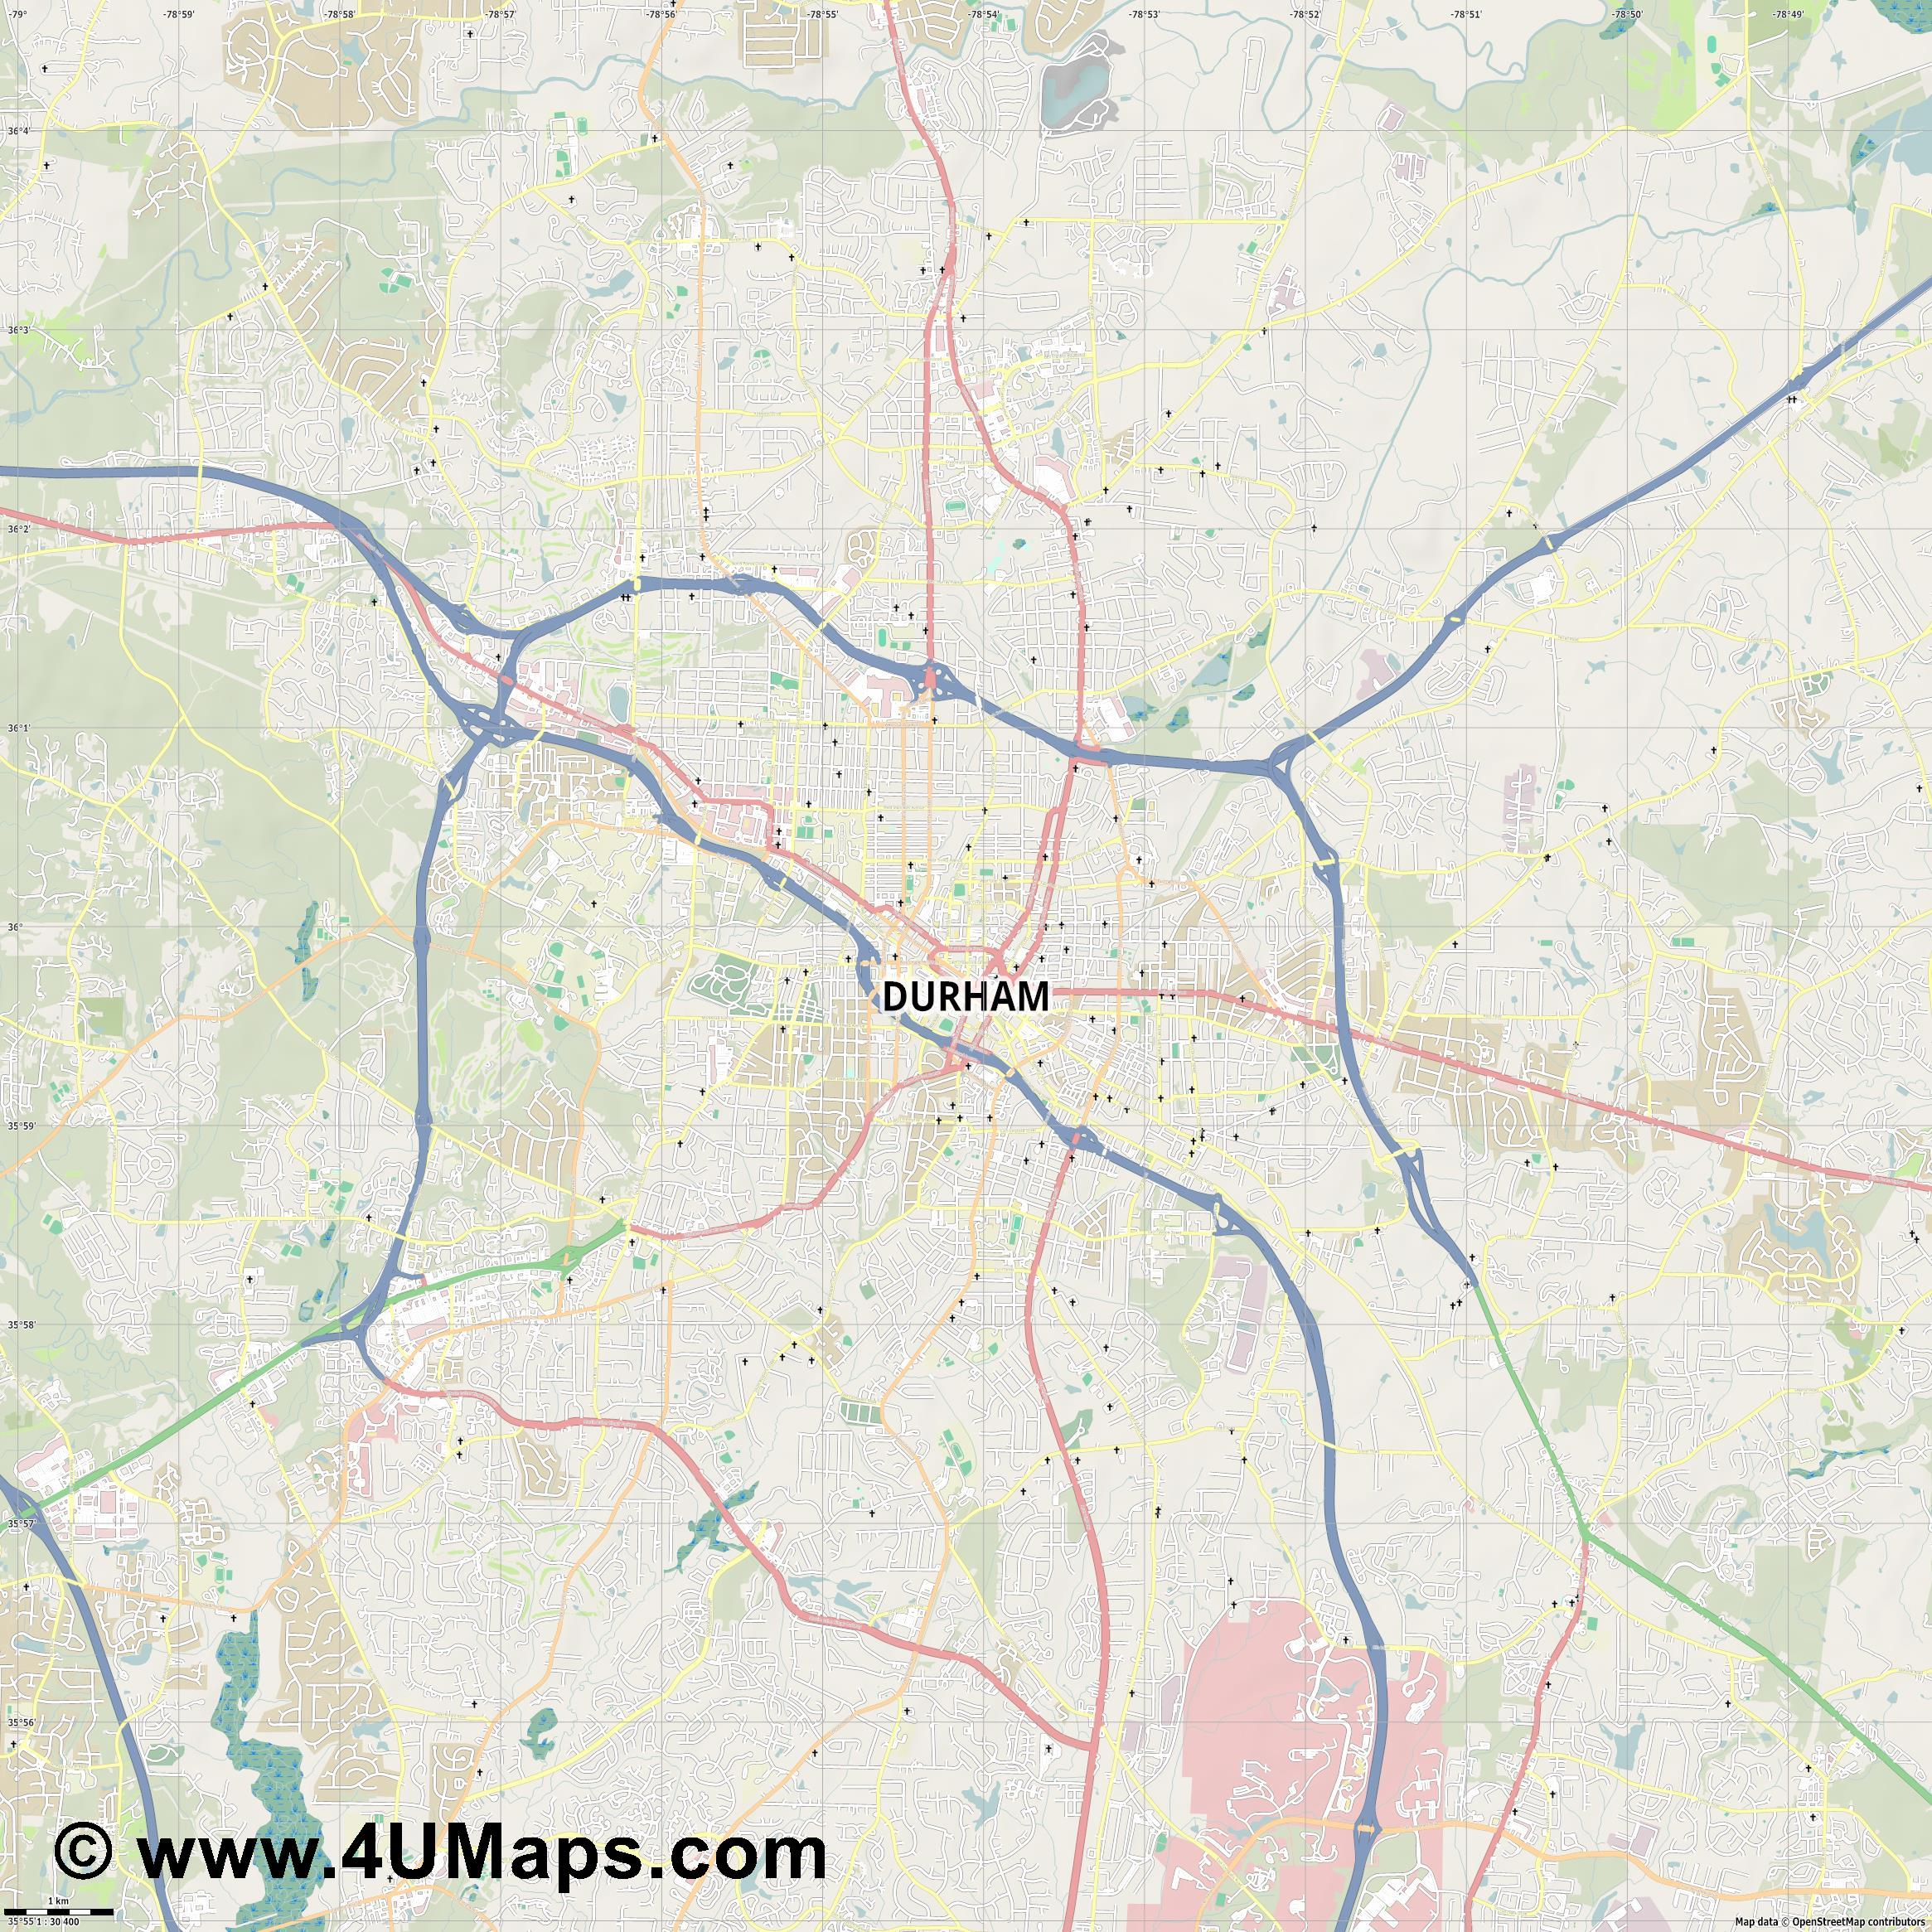 Durham  jpg high detail, large area preview vector city map